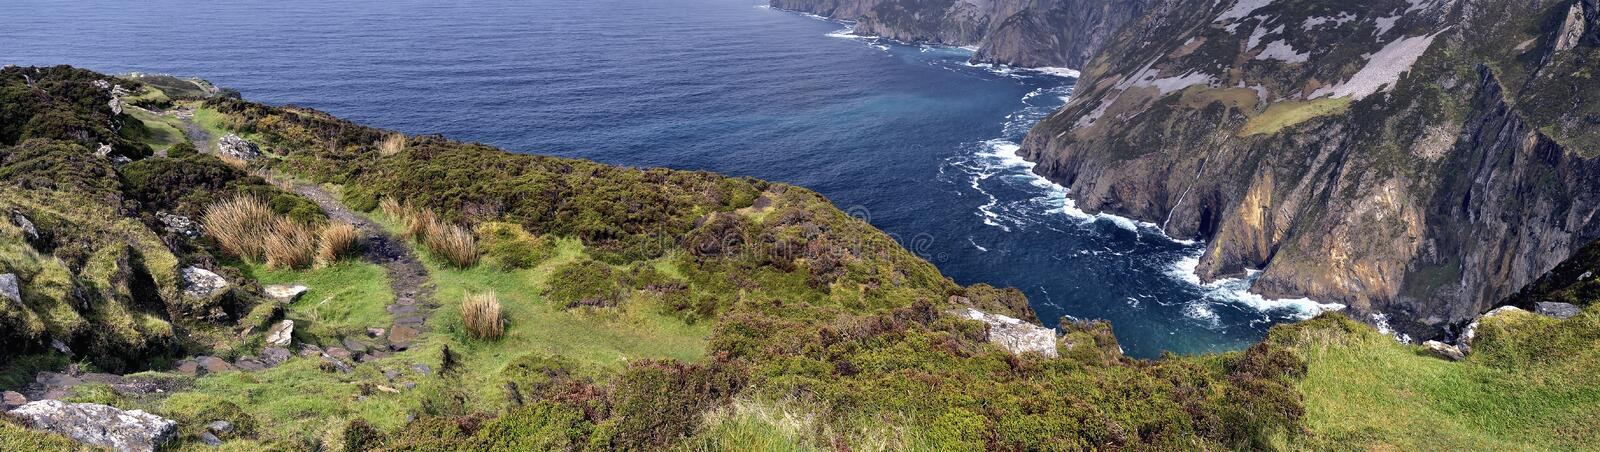 Cliffs of Slieve League panorama royalty free stock images